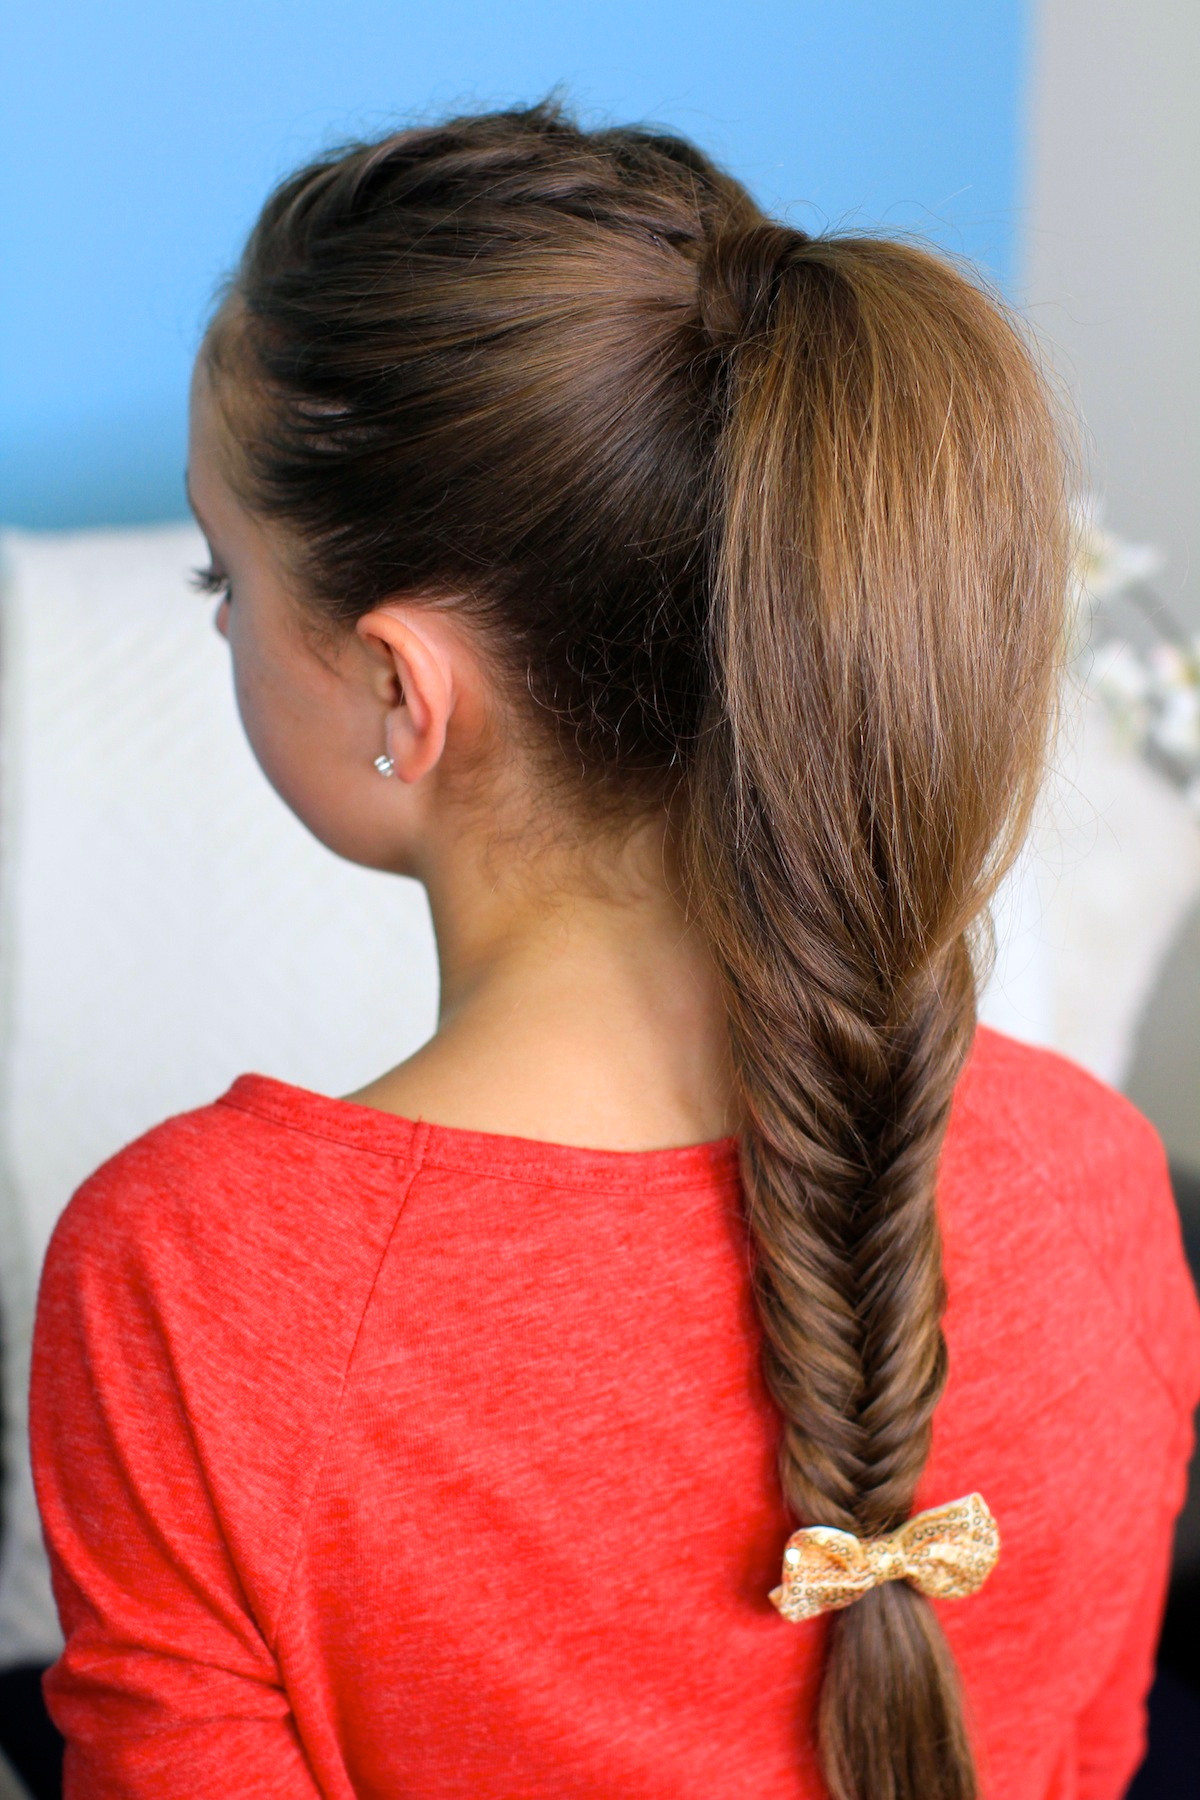 Best ideas about Girls Hair Cut Styles . Save or Pin Fluffy Fishtail Braid Hairstyles for Long Hair Now.